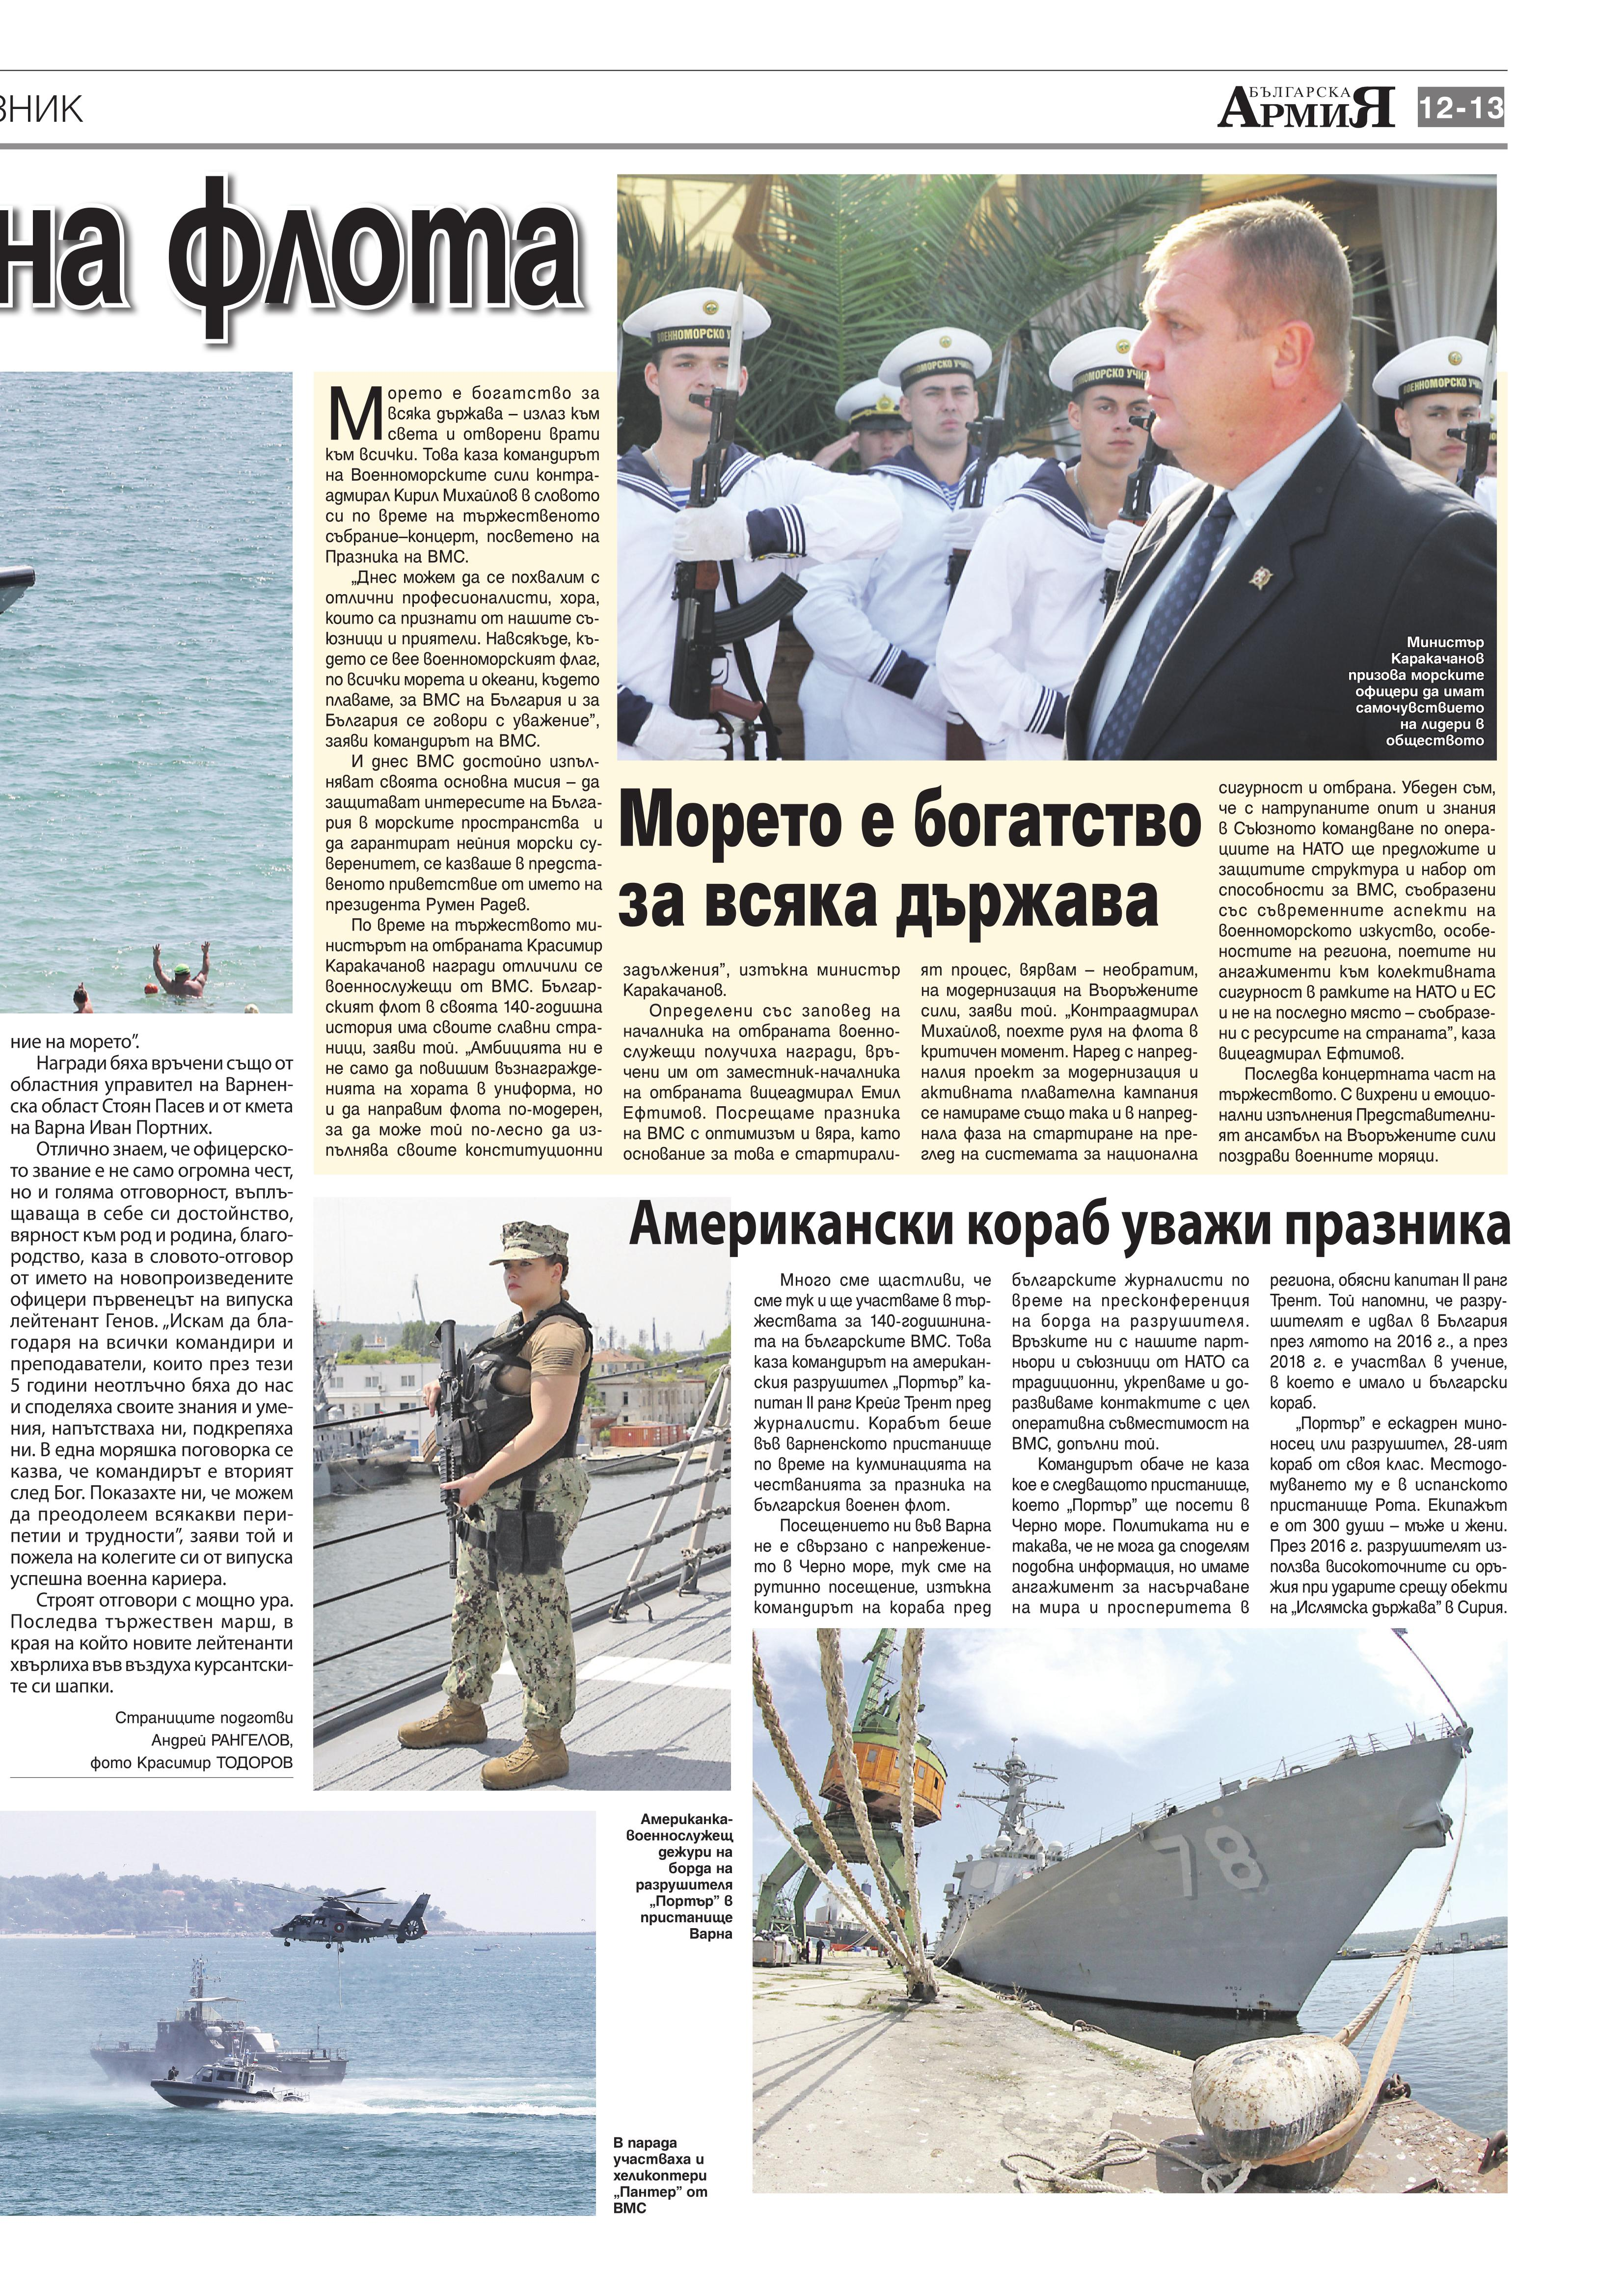 https://armymedia.bg/wp-content/uploads/2015/06/13.page1_-107.jpg